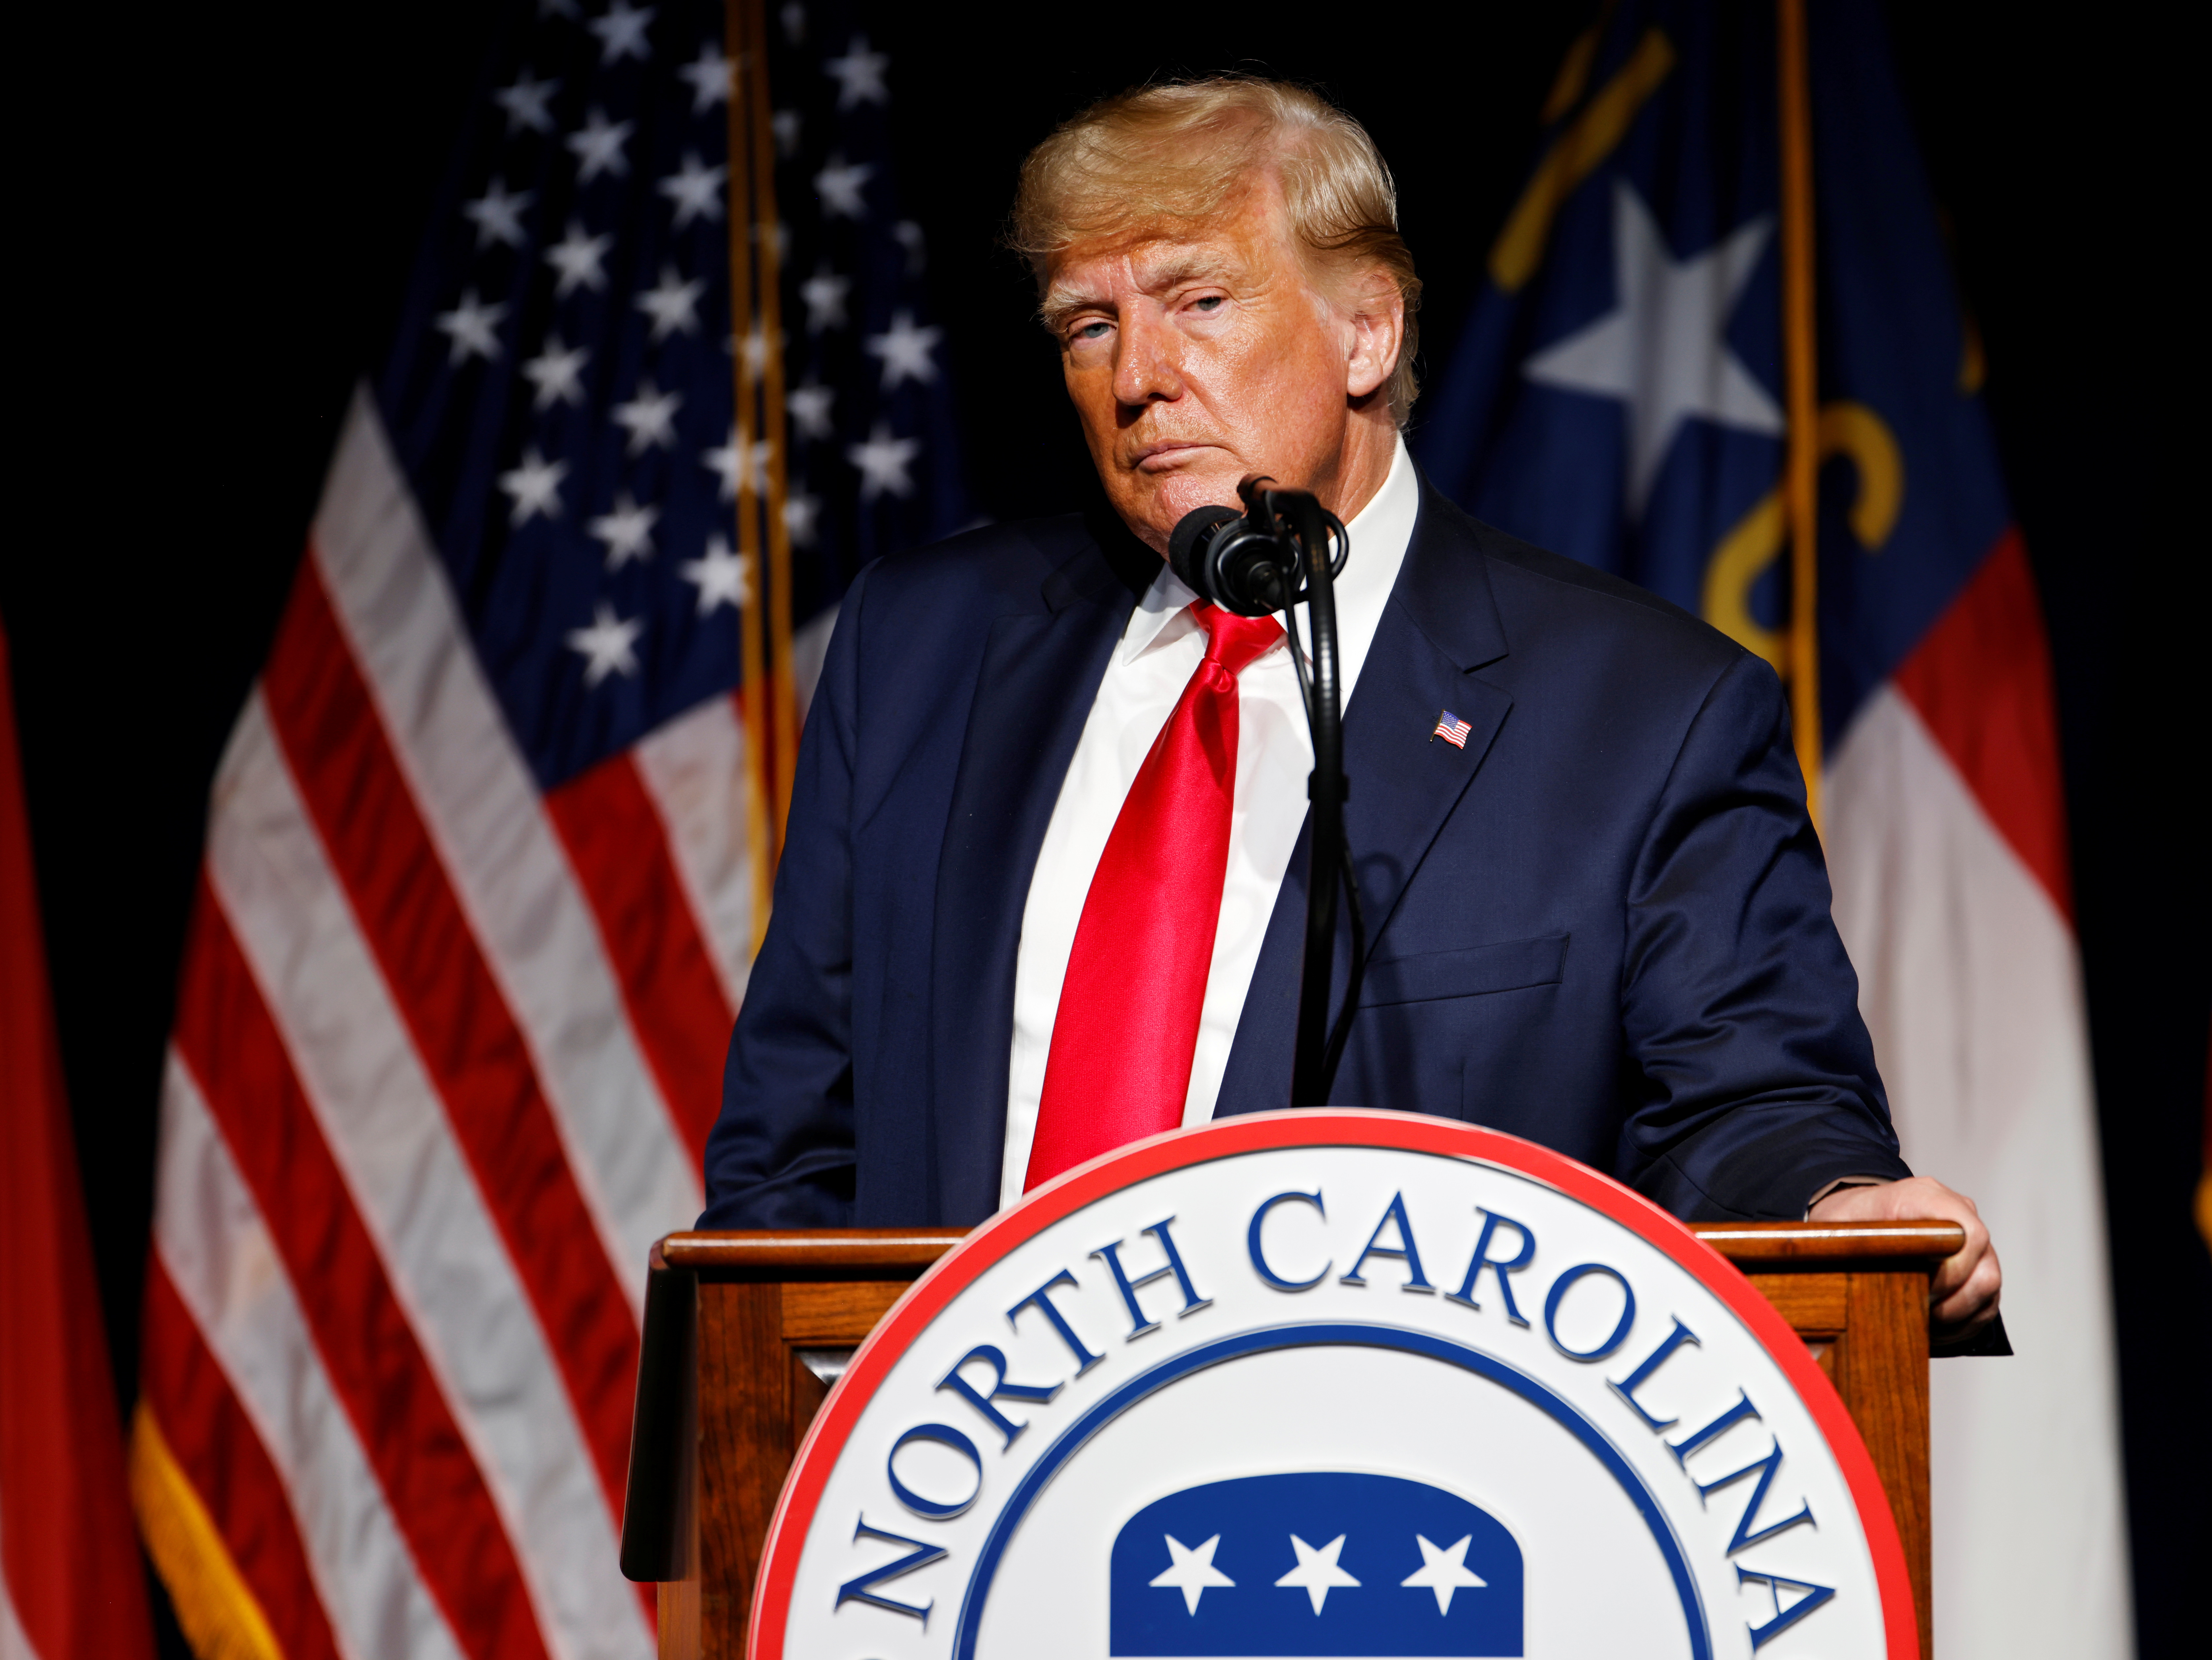 Former U.S. President Donald Trump pauses while speaking at the North Carolina GOP convention dinner in Greenville, North Carolina, U.S. June 5, 2021.  REUTERS/Jonathan Drake